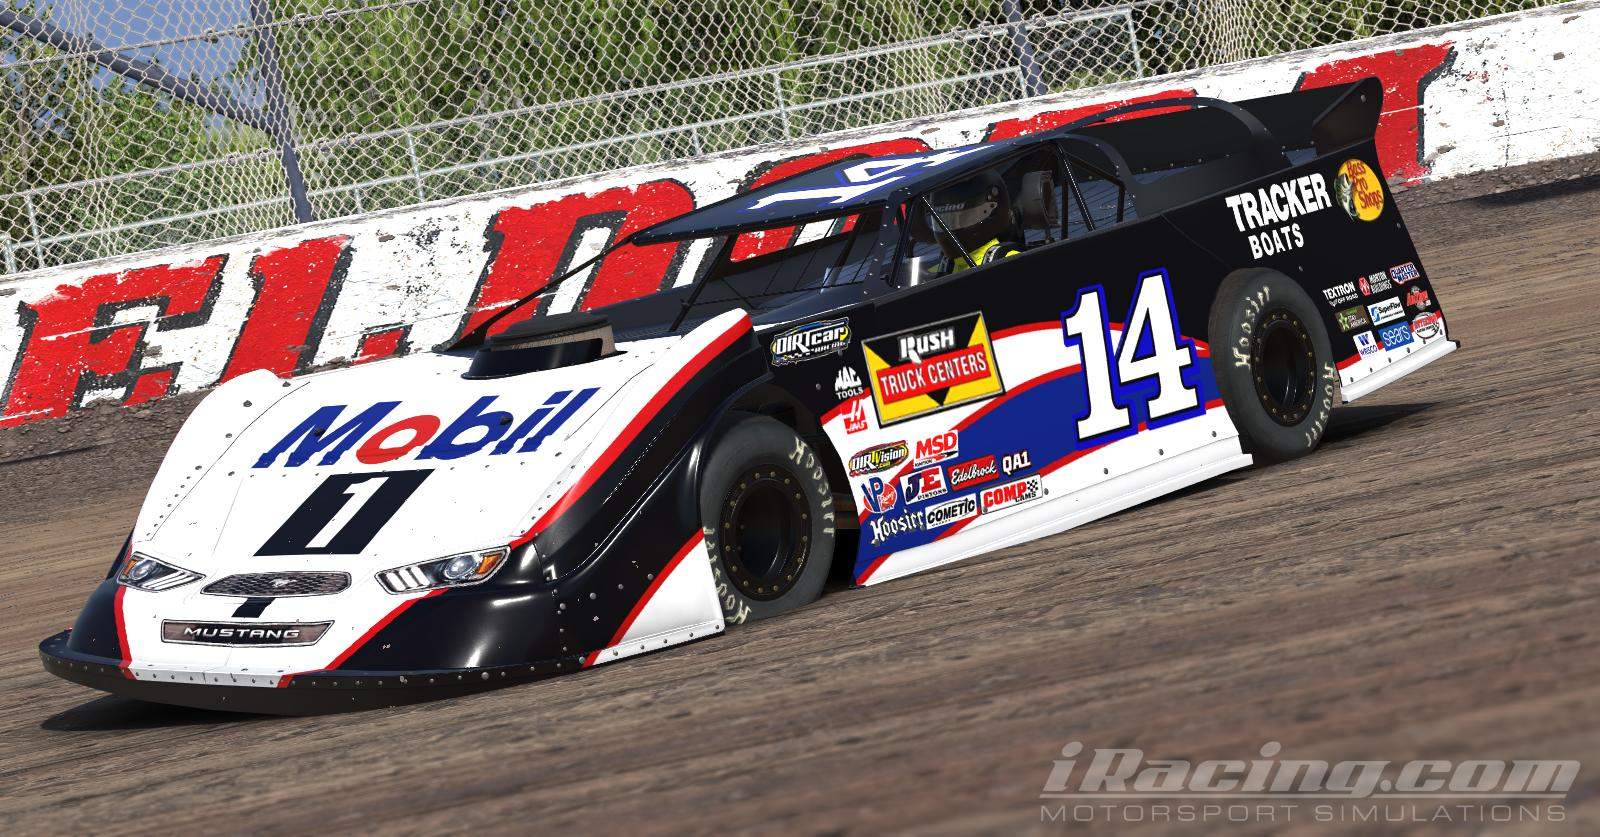 Mobil 1 dirt late model by tanner tallarico trading paints for Dirt track race car paint schemes